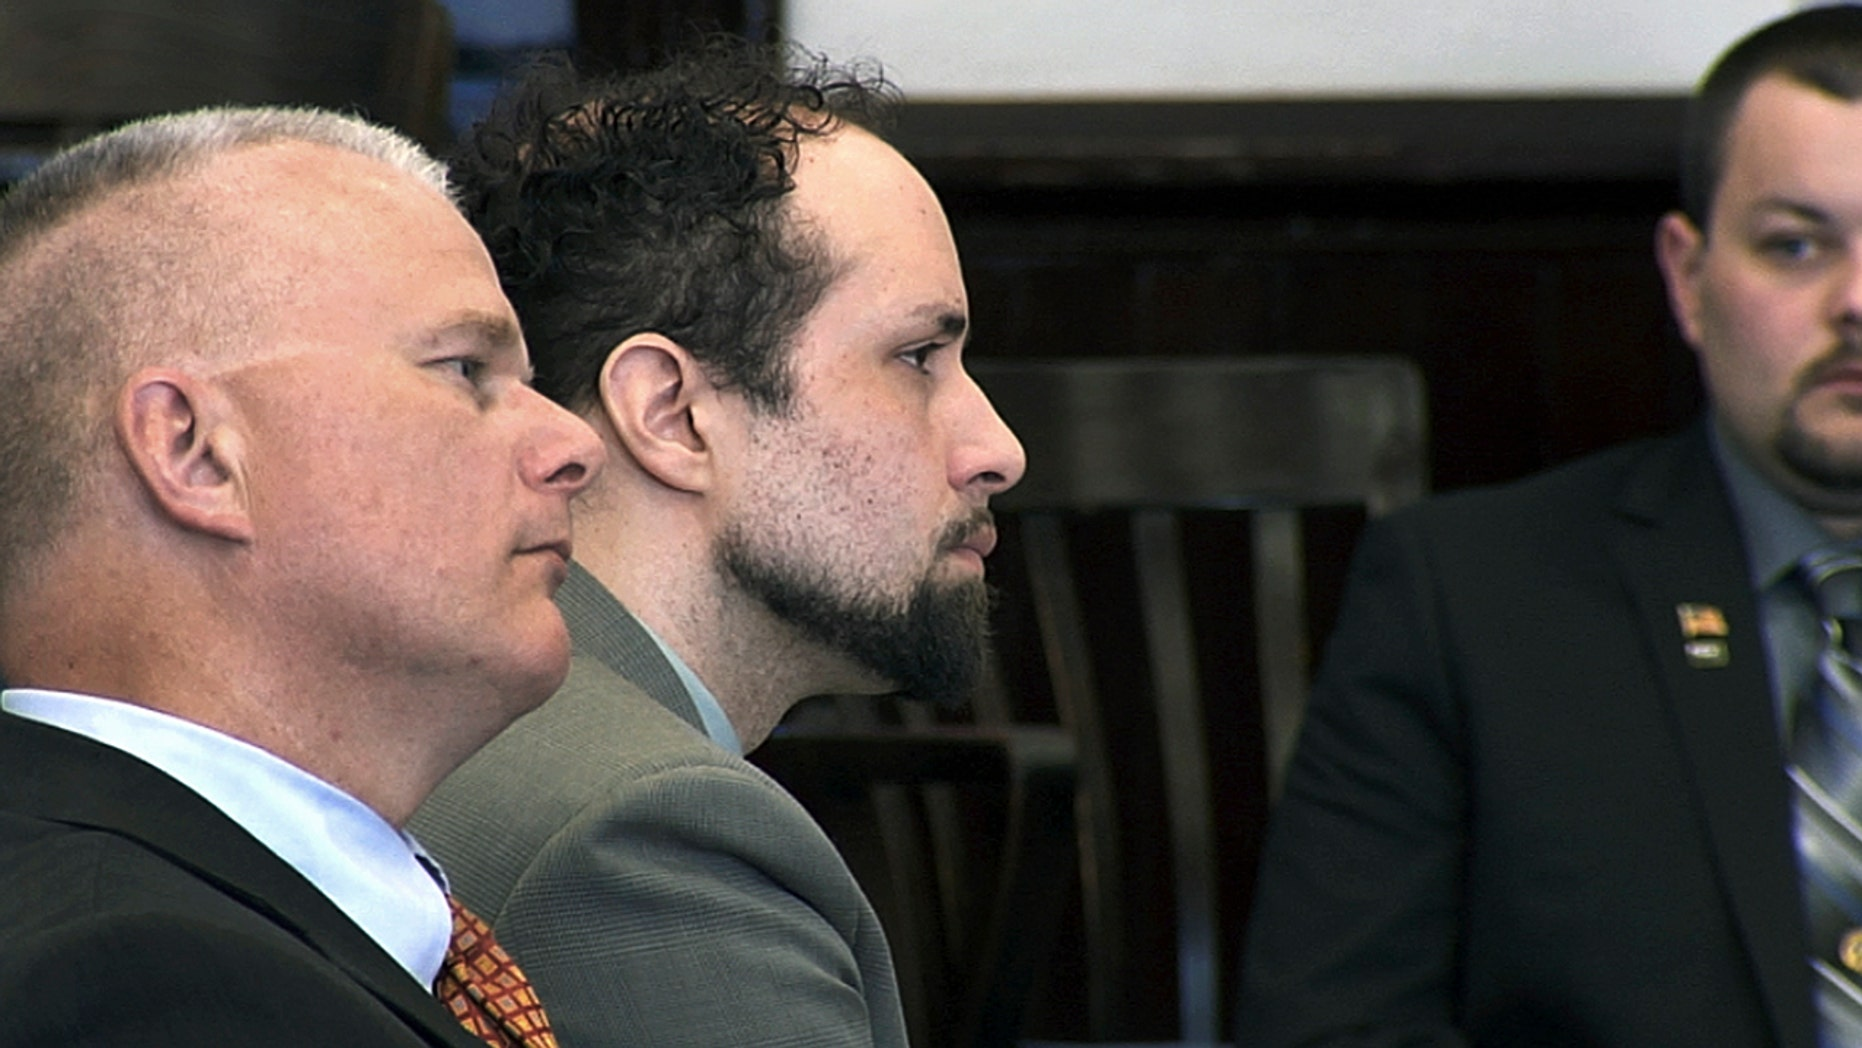 Luc Tieman, center, and his lawyer Stephen Smith, left, listen inside a courtroom where Tieman was sentenced to 55 years, Friday, May 11, 2018, in Somerset County Superior Court in Skowhegan, Maine.